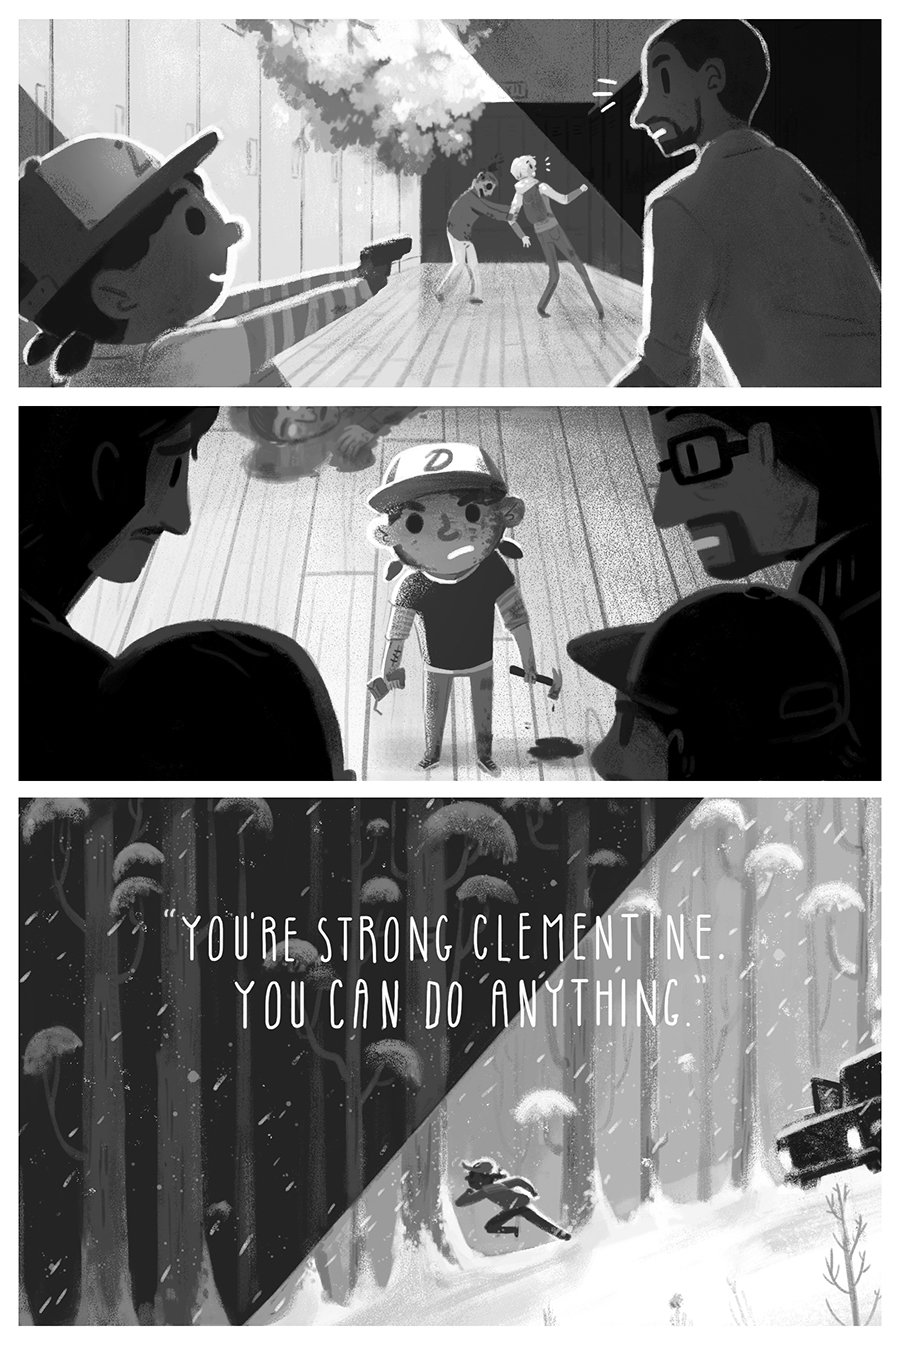 You can do anything. #MondayMotivation  (Art by Olivia Huynh: https://t.co/MN2p4BFKVM, @usuallyawake.) https://t.co/rQ3wPL9Sq8